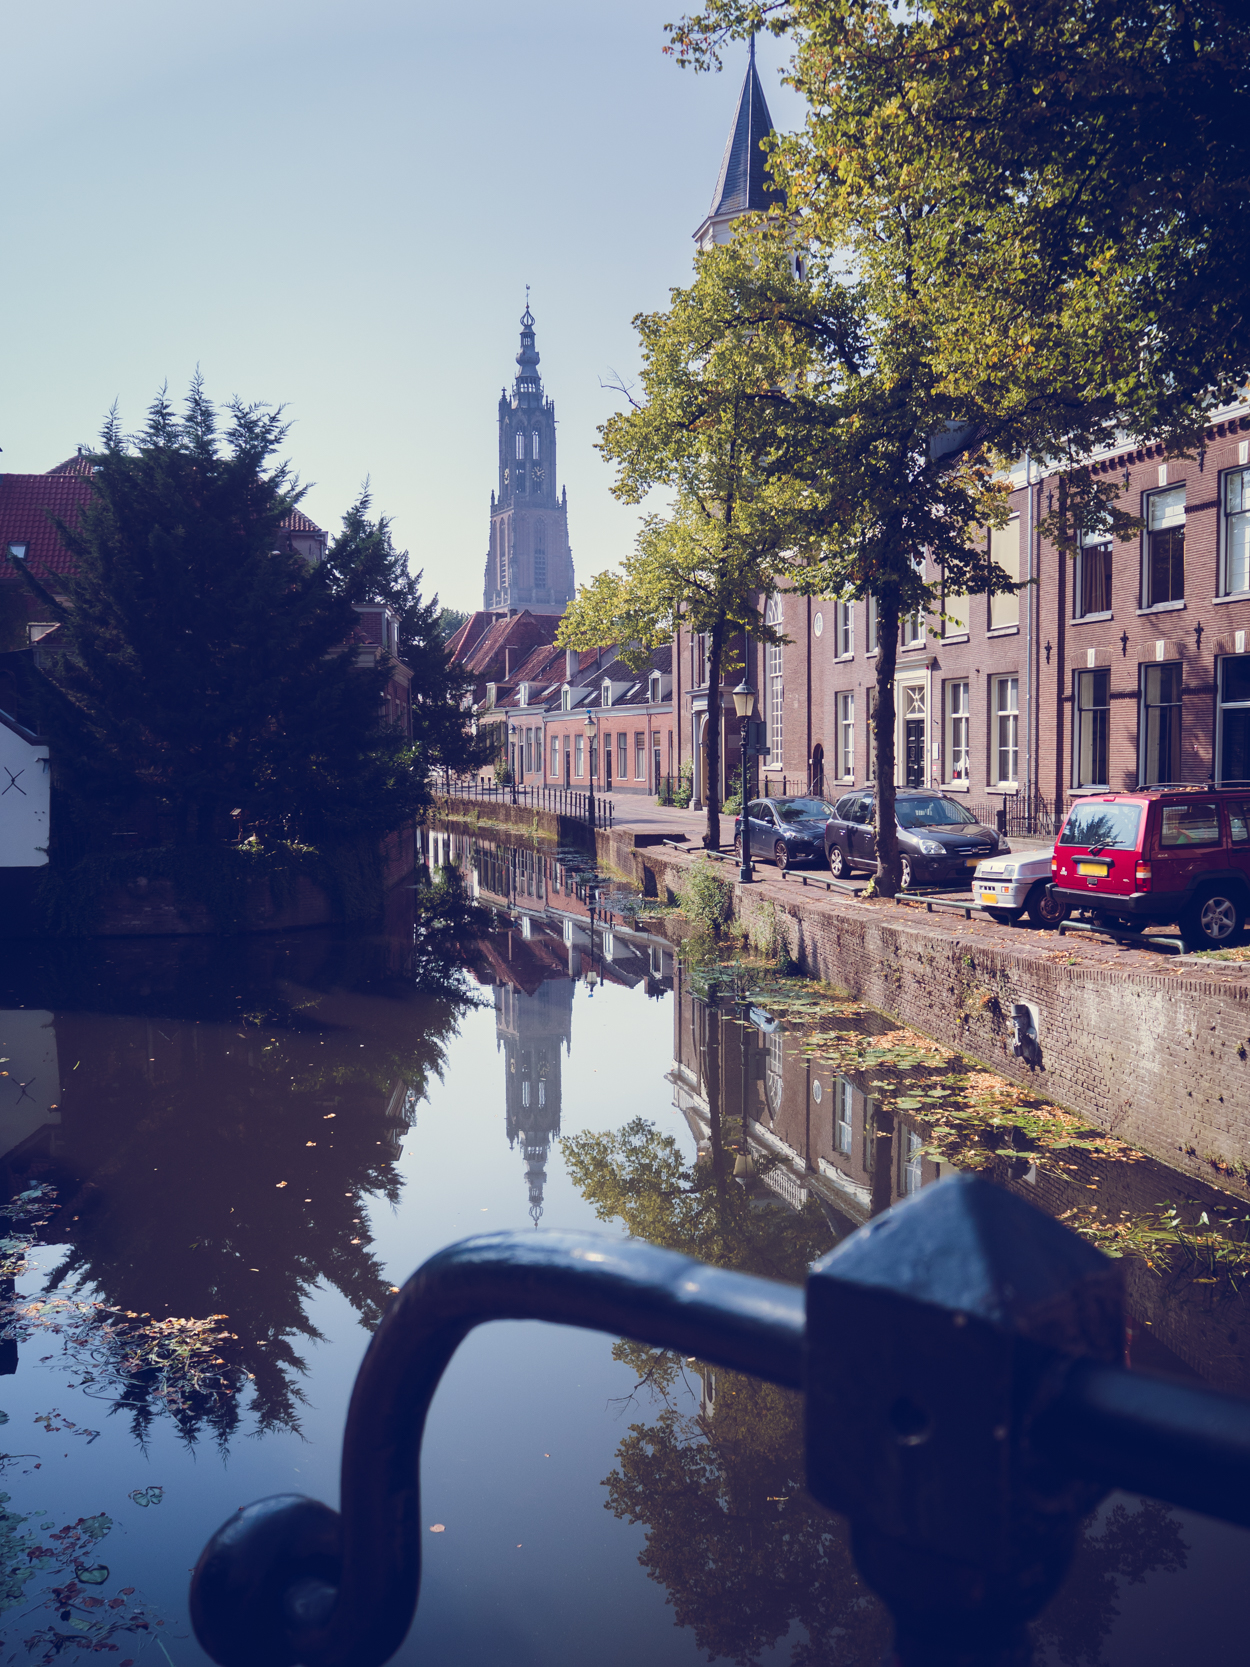 THE ULTIMATE AMERSFOORT CITY GUIDE | THE CHIC ITALIAN | The city guide to amersfoort with what to do when you visit Amersfoort for a day trip or longer